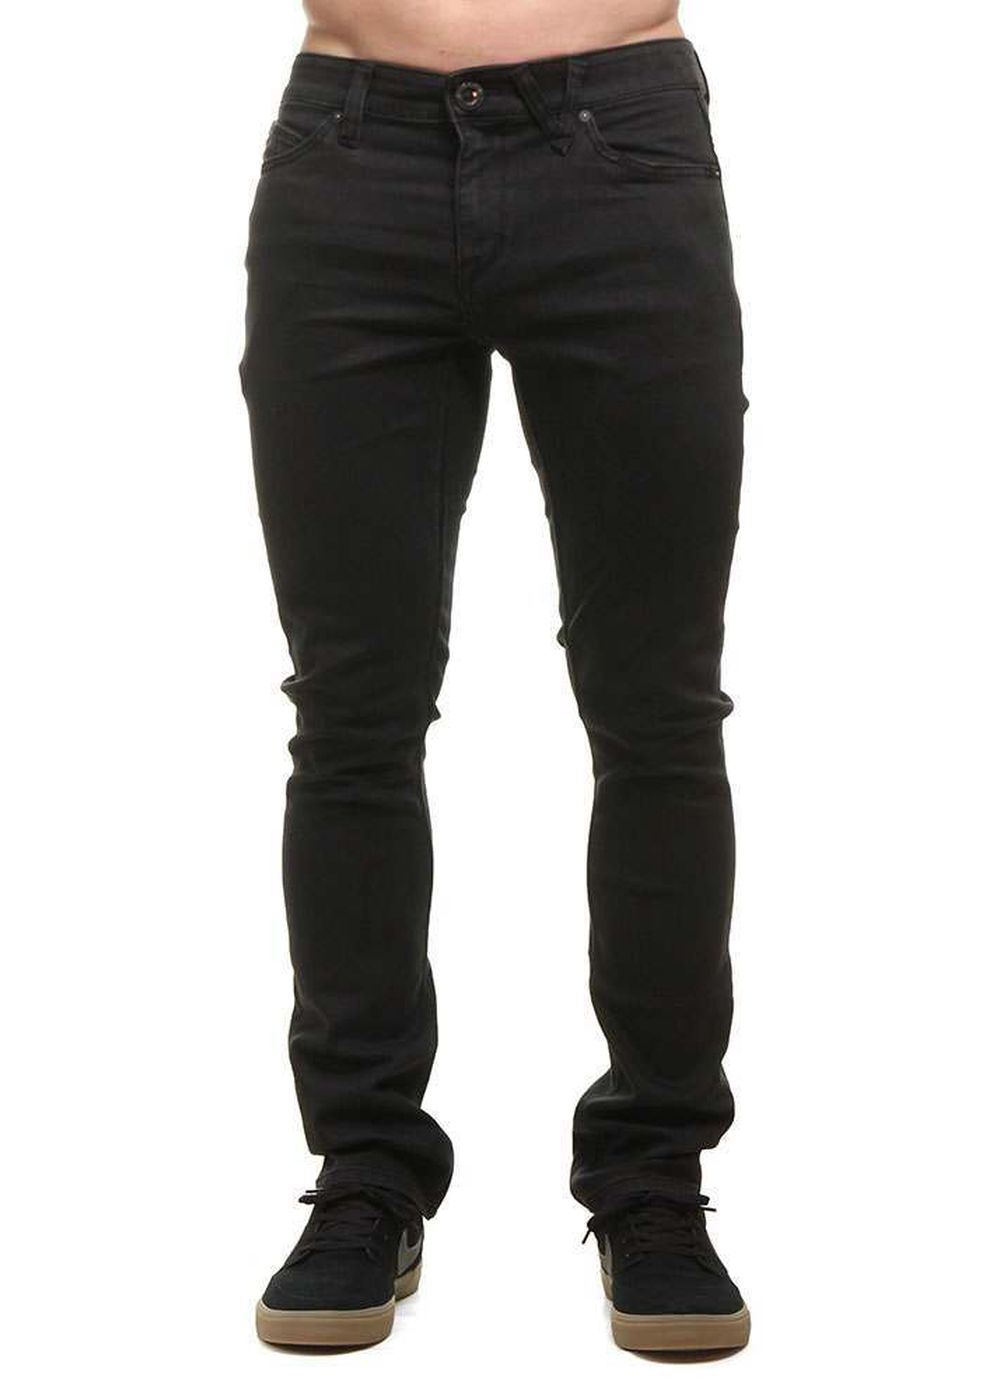 volcom-2x4-jeans-ink